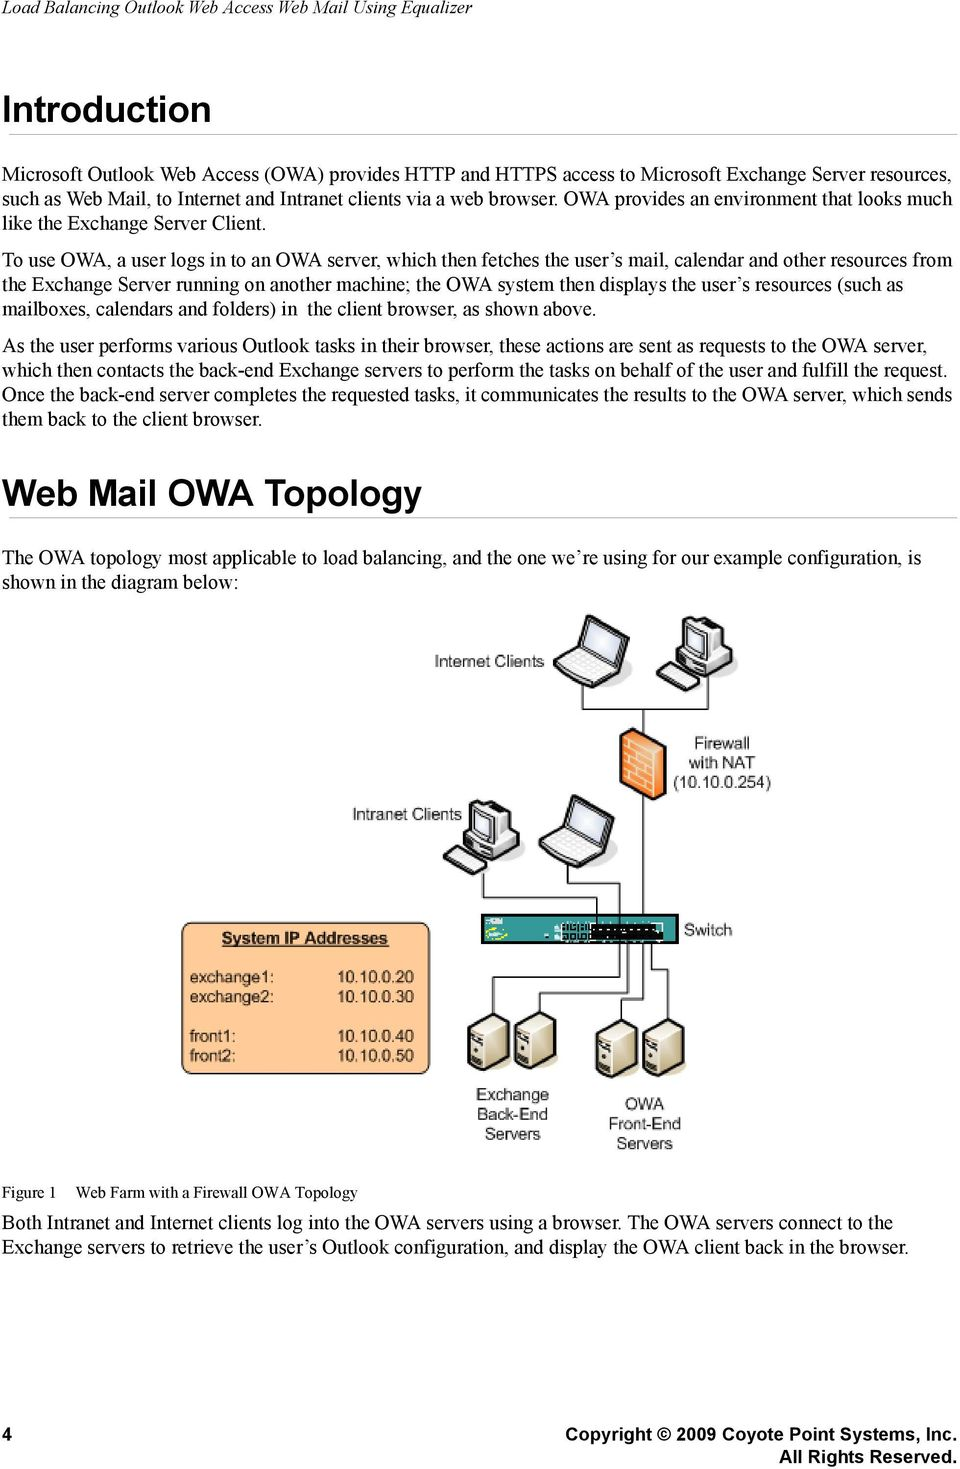 To use OWA, a user logs in to an OWA server, which then fetches the user s mail, calendar and other resources from the Exchange Server running on another machine; the OWA system then displays the